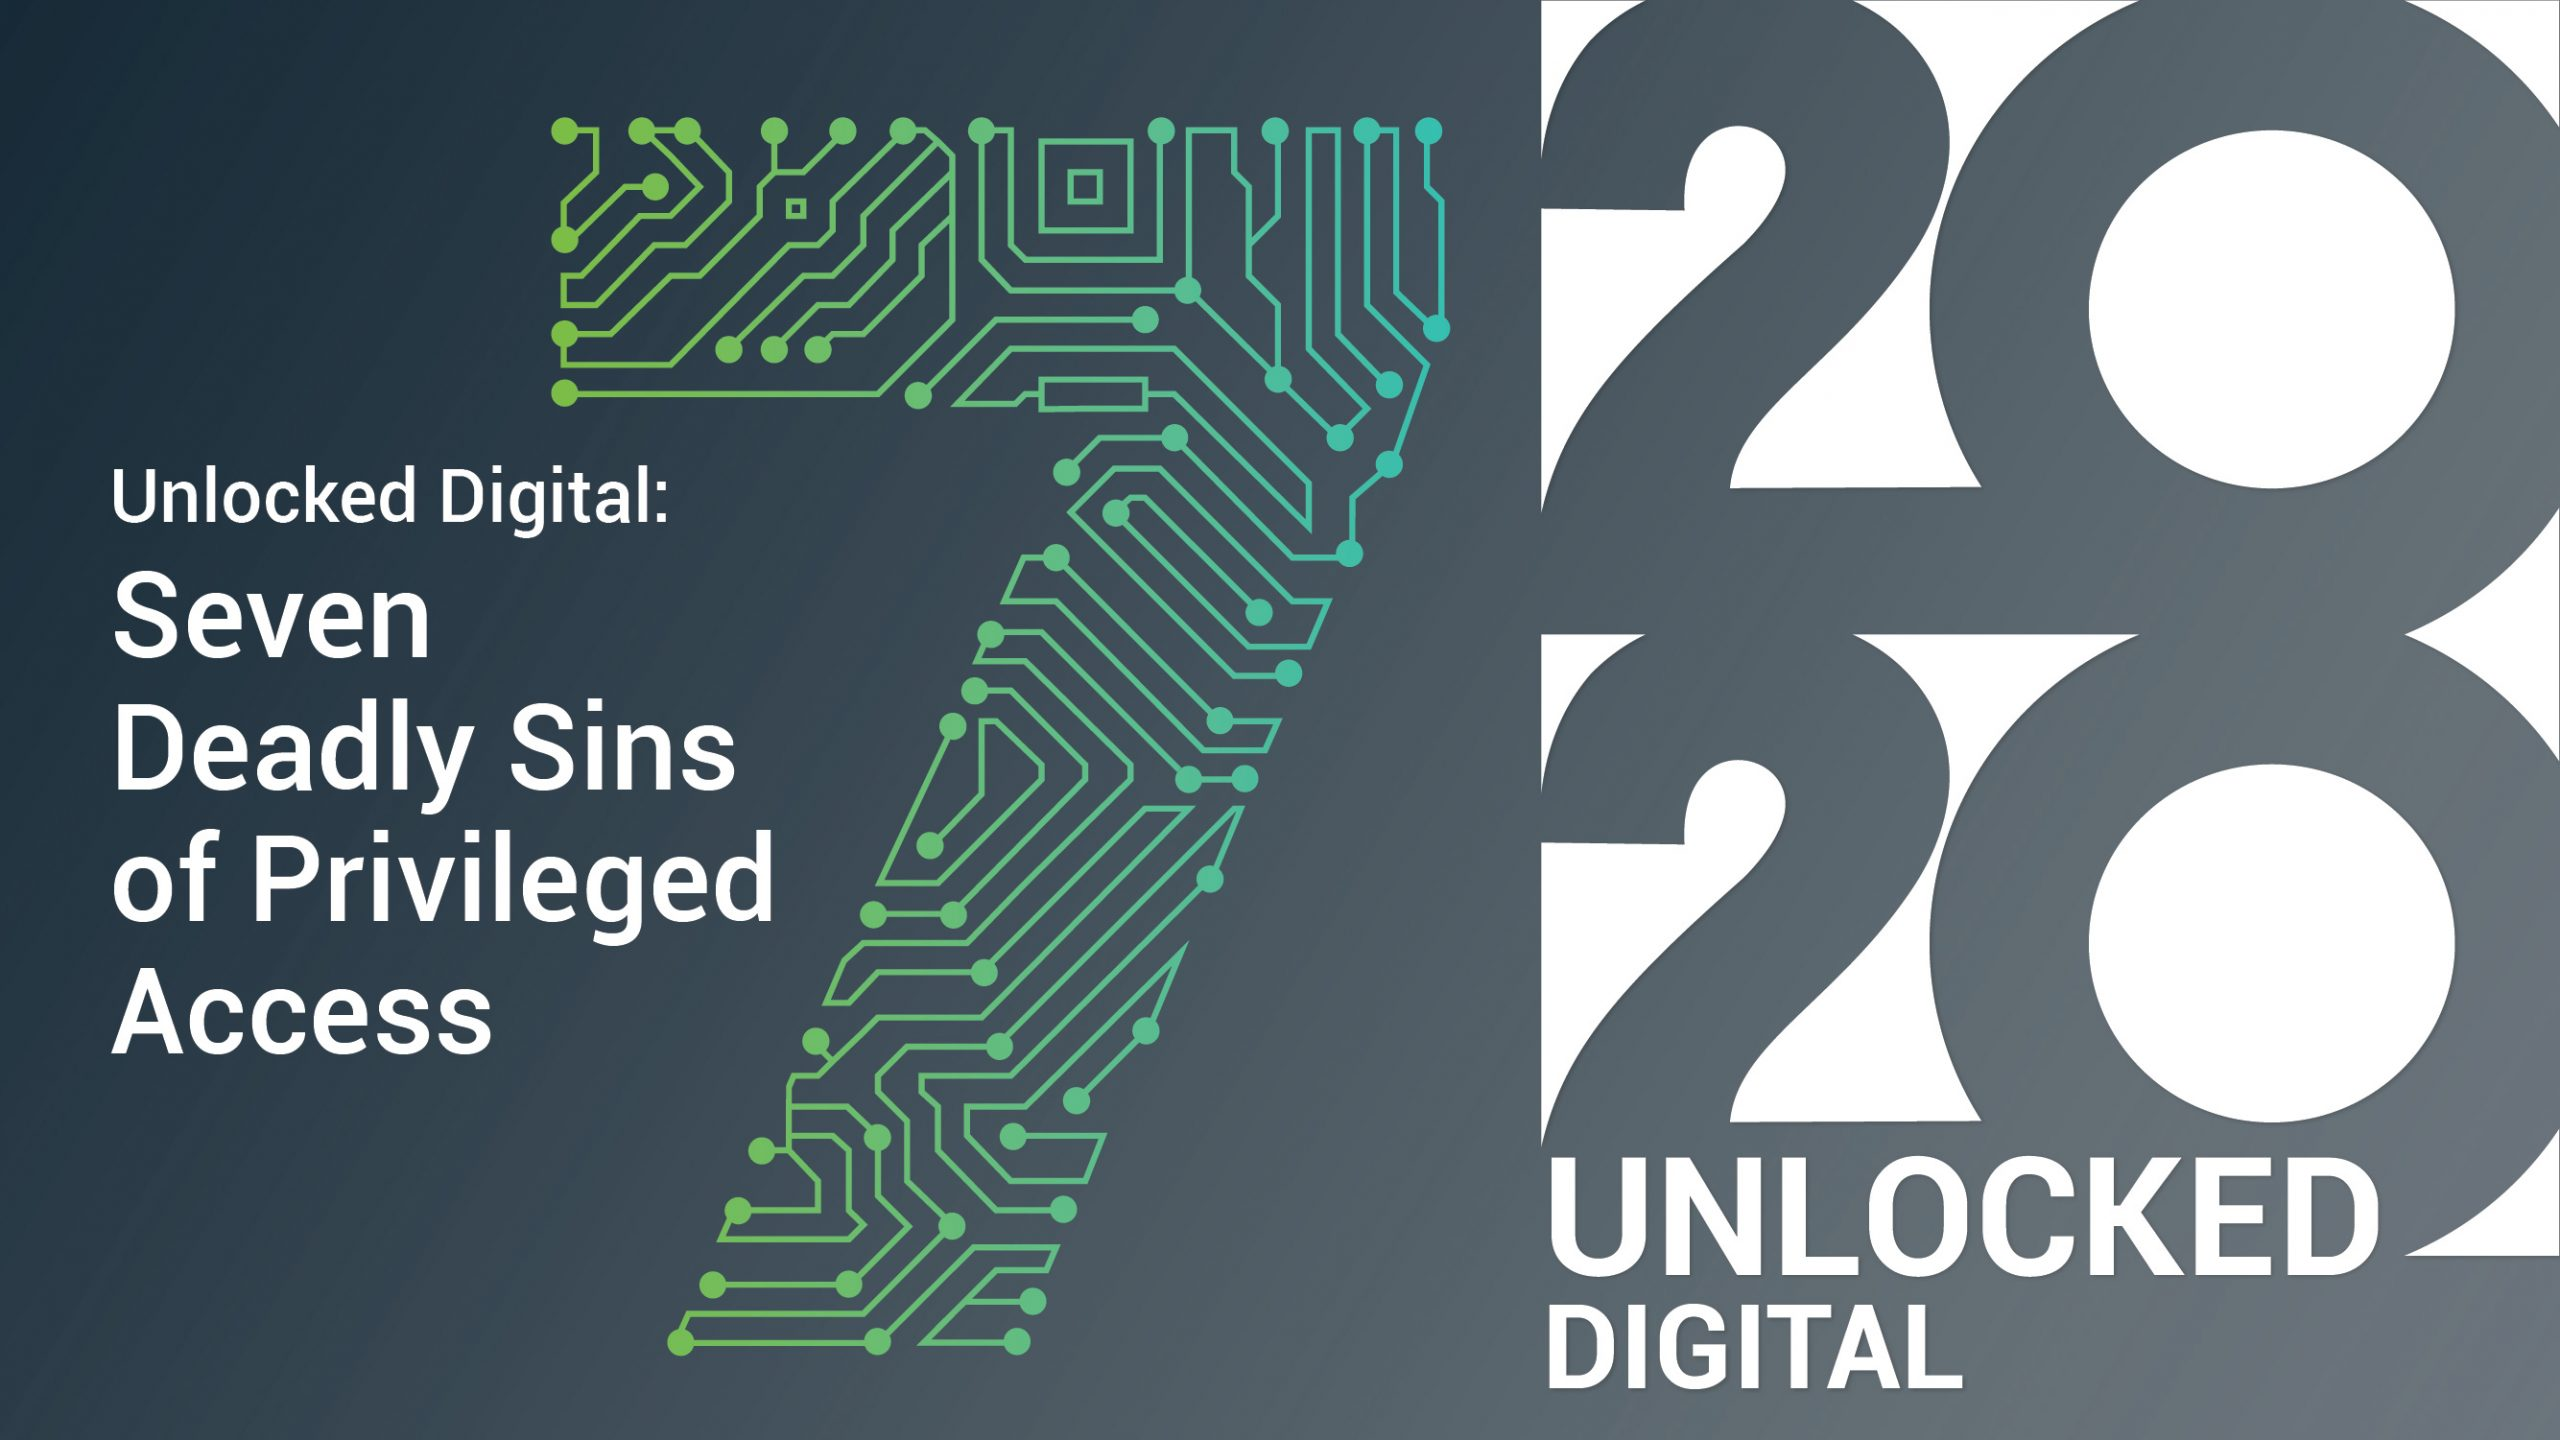 Unlocked Digital: Seven Deadly Sins of Privileged Access